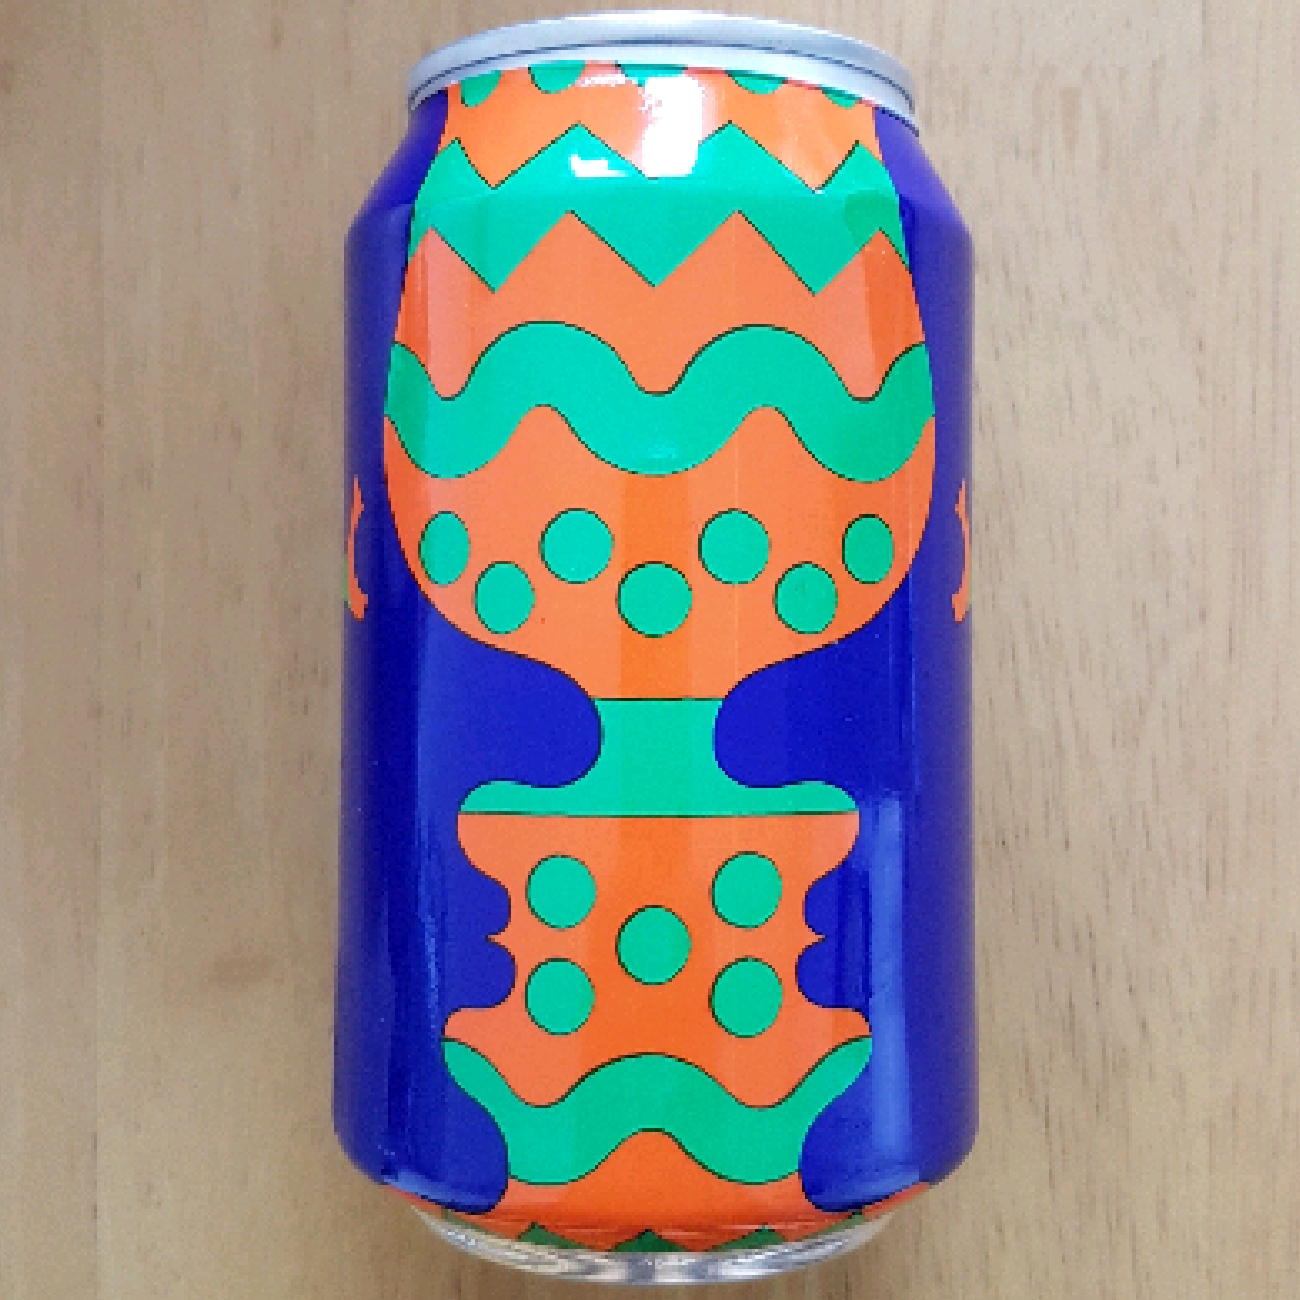 Omnipollo Rubedo Imp. Porter **REDUCED TO CLEAR BB 20.2.21**